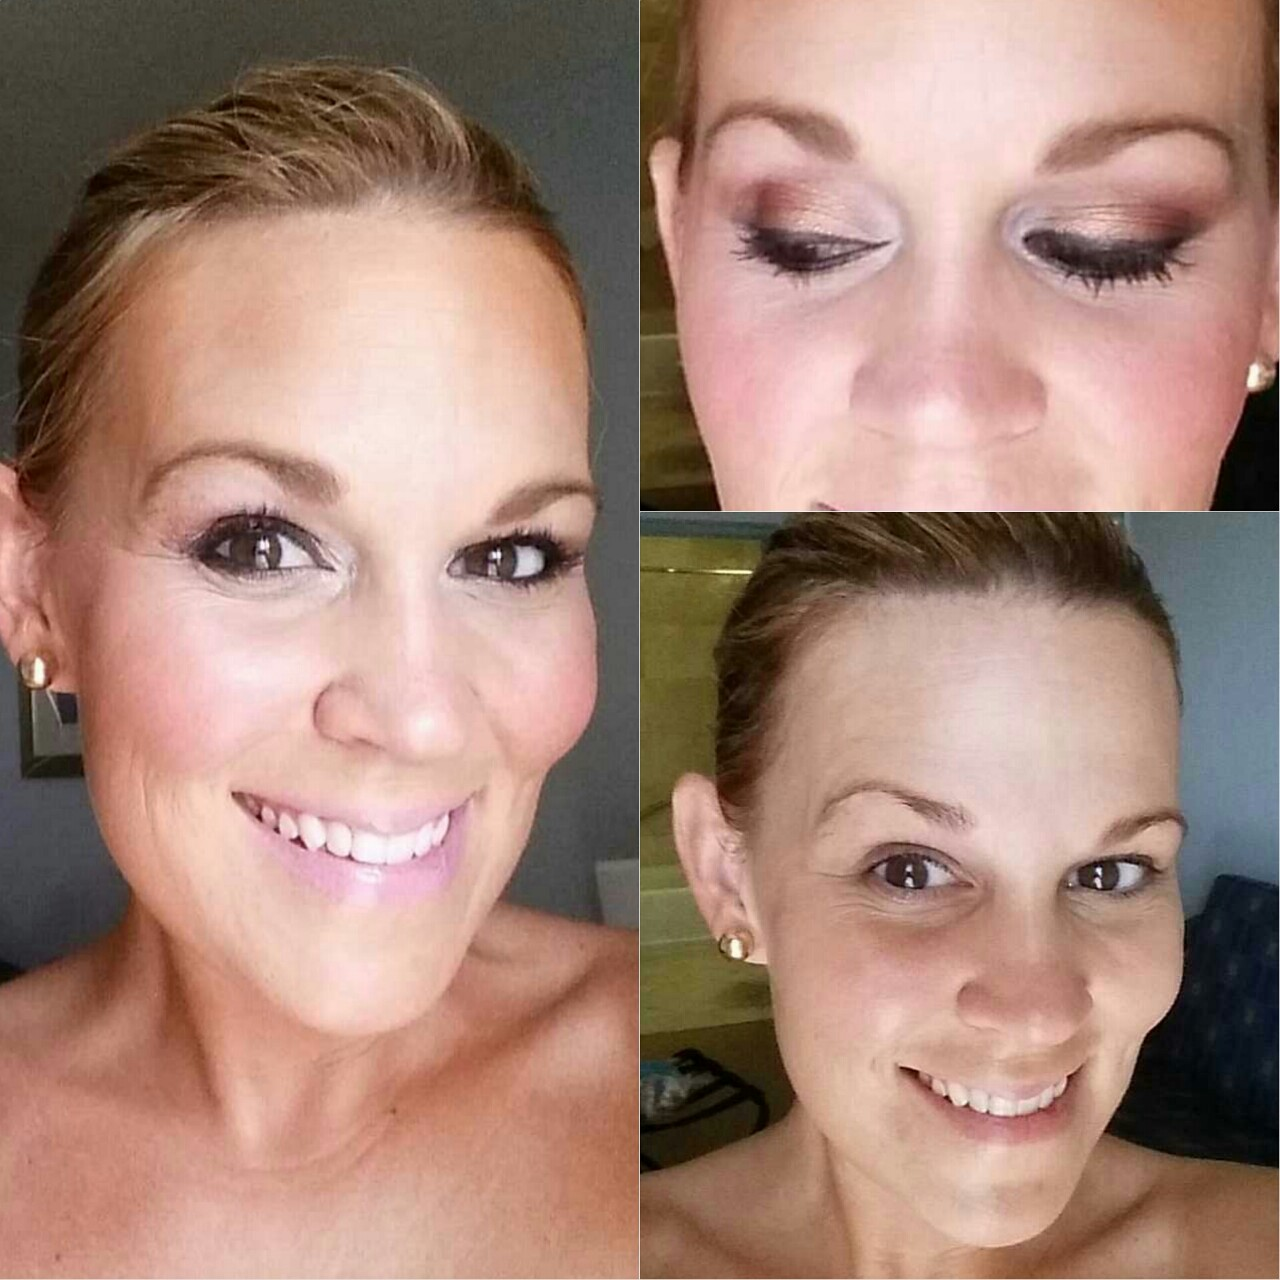 "I have ladies ask all the time how I do my makeup personally. Well here's to bearing it all in the new year. Bottom right is me with NO makeup on and left is makeup after 15 min. NO FILTER or NO fake lights, all natural light in SAME spot in my hotel. No tricks here…just TRUTH. My ""polished bronze"" look. I can do multiple looks with same products in my bag.     Here is what is in MY bag….  (all prices are approximately, not sure exact value)  Primer: Michelle Phan .em Smoothing Face Primer  ($40)  Eye Primer: Urban Decay Primer Potion ($22)  Shadow: Two Faced ""Cat Eyes"" mini pallette ($36)  Brow Pencil: Jordana ""FAbuBrow"" in taupe ($2.99)  Liner: Fergie by Wet and Wild in little black dress ($4)  Mascara: Essence ""Get Big Lashes"" in waterproof black ($3.99)  Foundation: NYX Stay Matte ($10)  Concealer: NYX waterproof concealer ($5) Bronzer: Tarte  Matte Bronzer ($32)  Highlighter: used the highlighter in the eyeshadow pallete   Lip Gloss: NYX Lip Butter Gloss in Merengue ($5)    Sounds like a lot but it actually isnt. Fits in a tiny Stella and Dot bag easily. Most of tge stuff i use is cheap but good quality and paired with medium priced items. It doesn't take a lot of time or money to put the best YOU out there!!    For  some GLOSSA GIRL TIME a personalized intructional experoence and product suggestion…call us for a makeup lesson in studio, in home or group!      www.glossamakeup.net      Xoxo,  L"